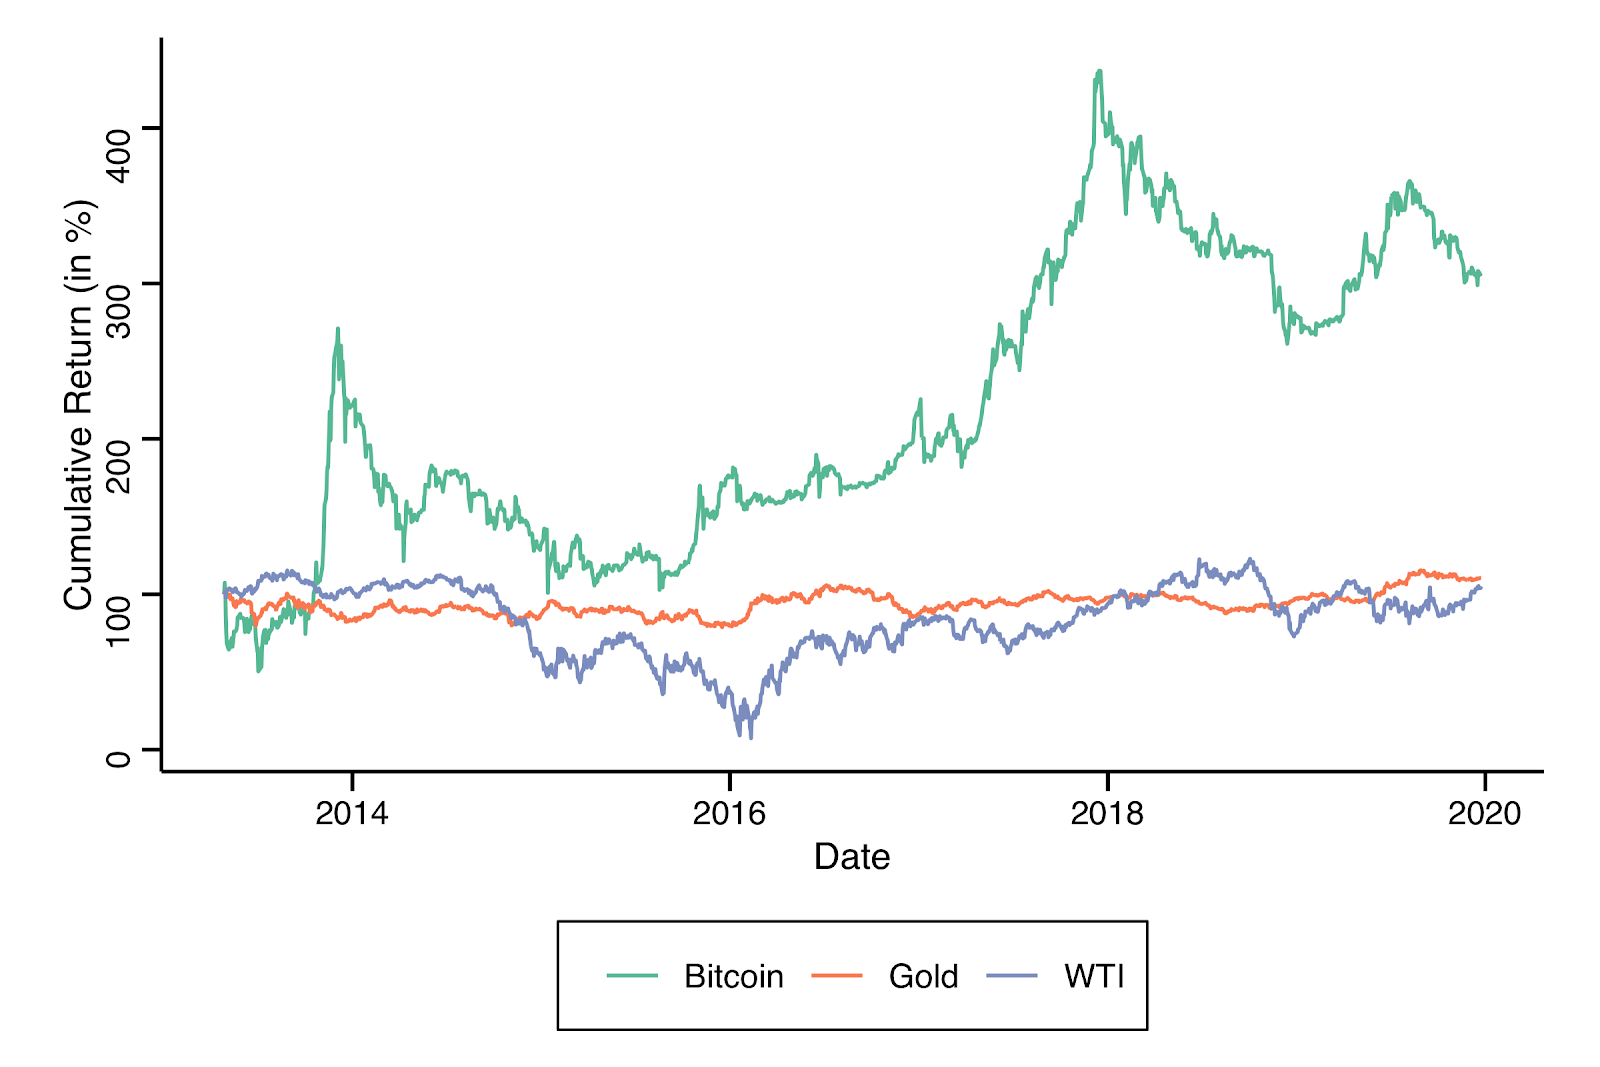 Figure 6: Cumulative return of investing in gold, oil and bitcoin in April 2013 sample until Christmas 2019